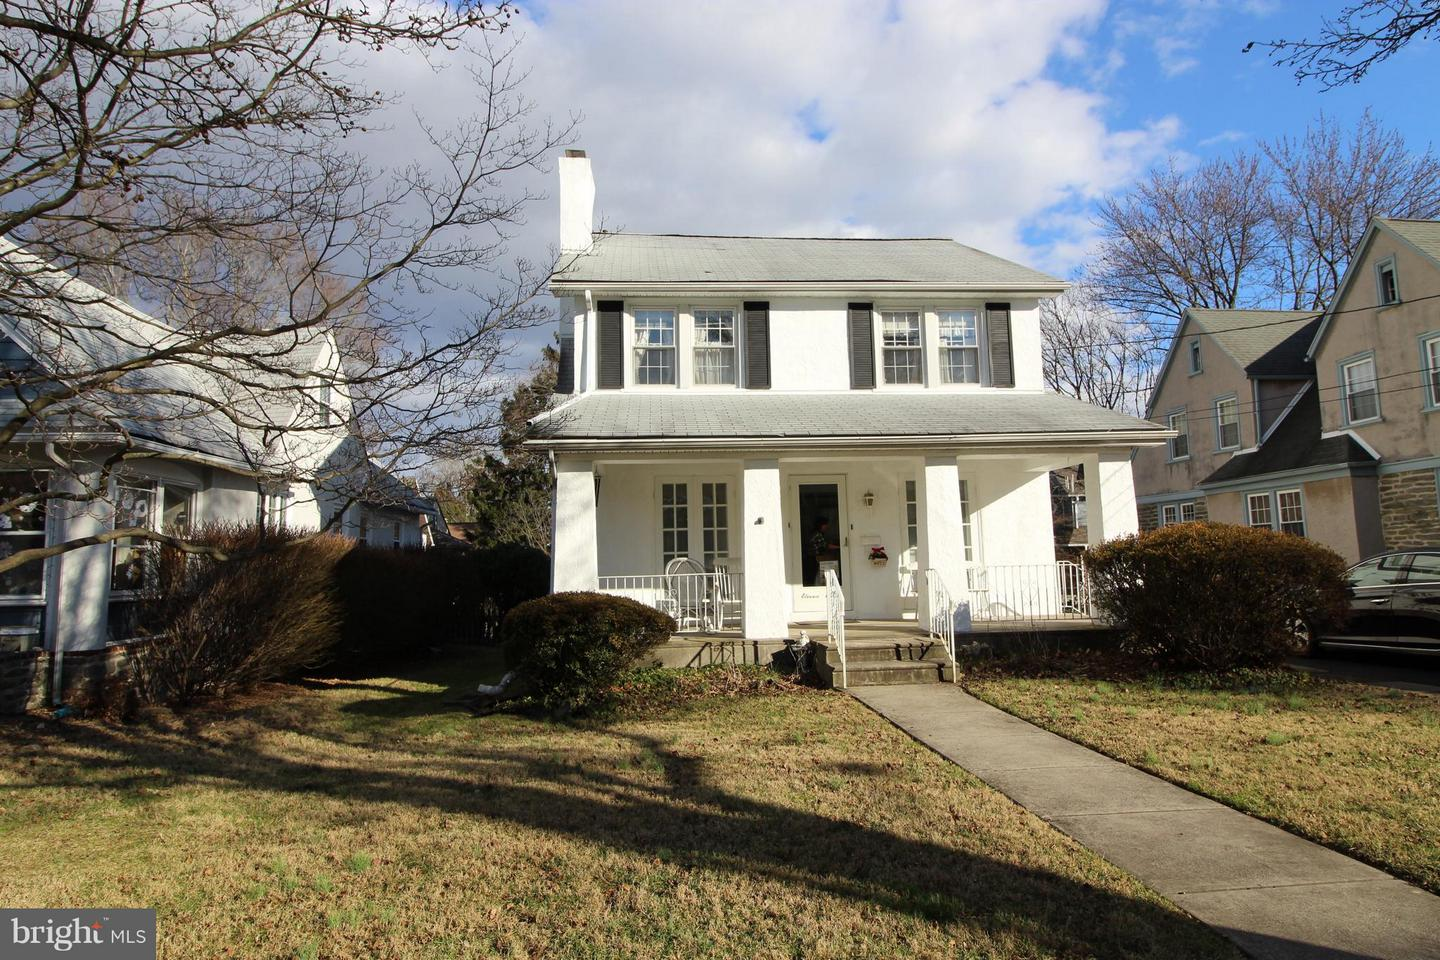 1111 Larchmont Avenue Havertown, PA 19083